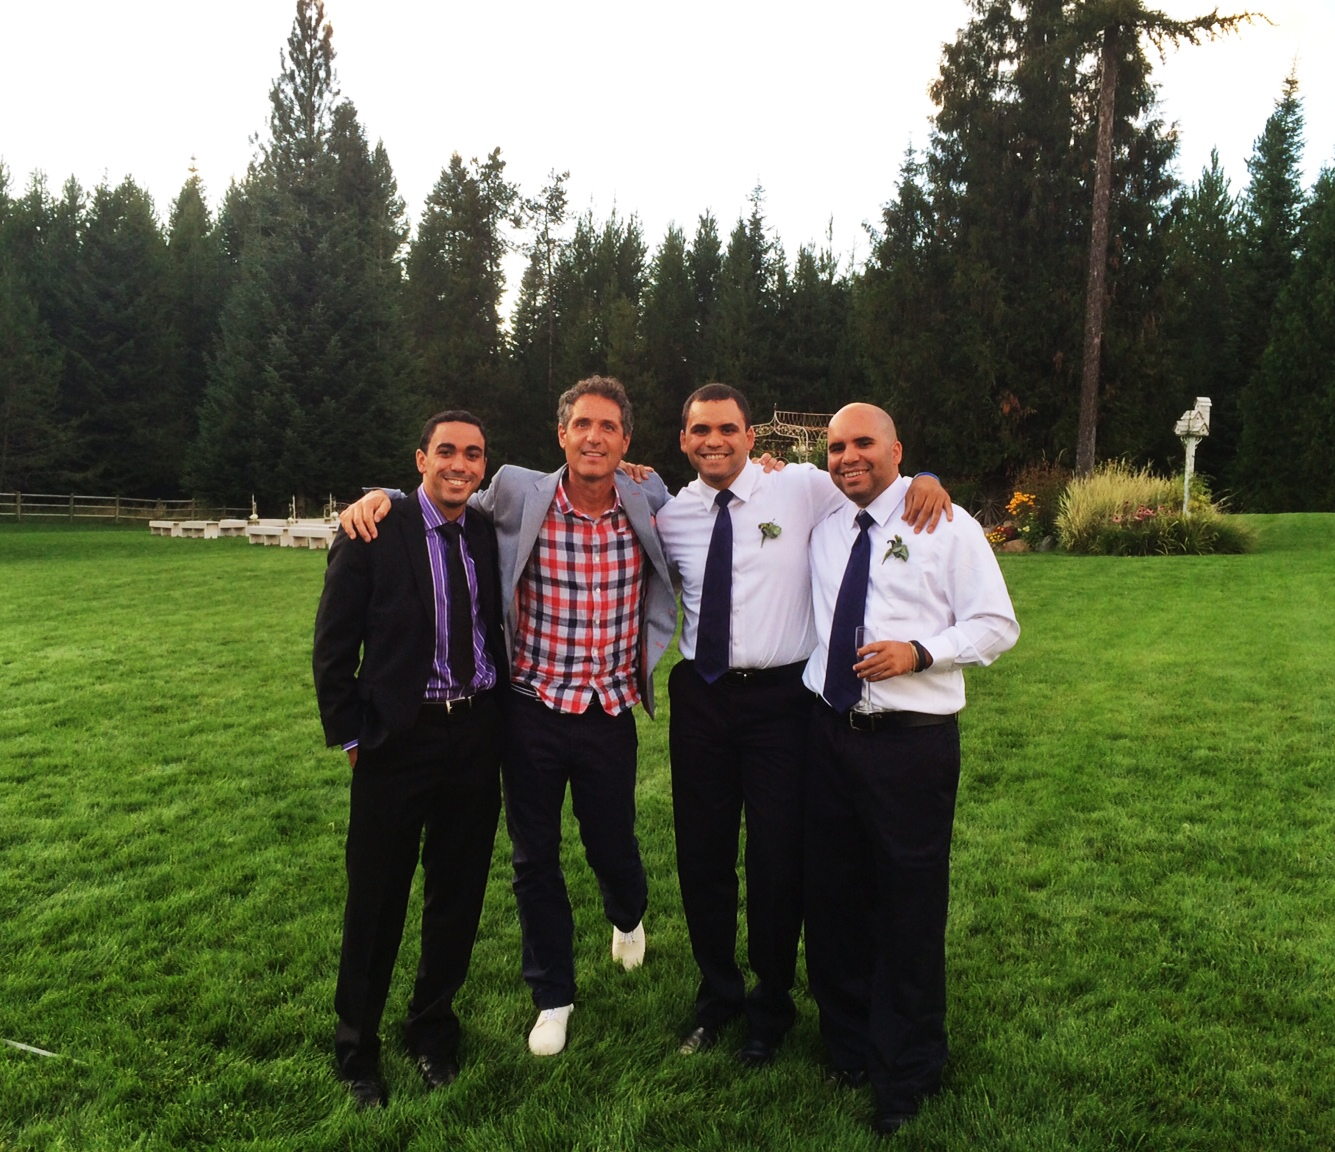 My brothers and Uncle at one of our friends Weddings